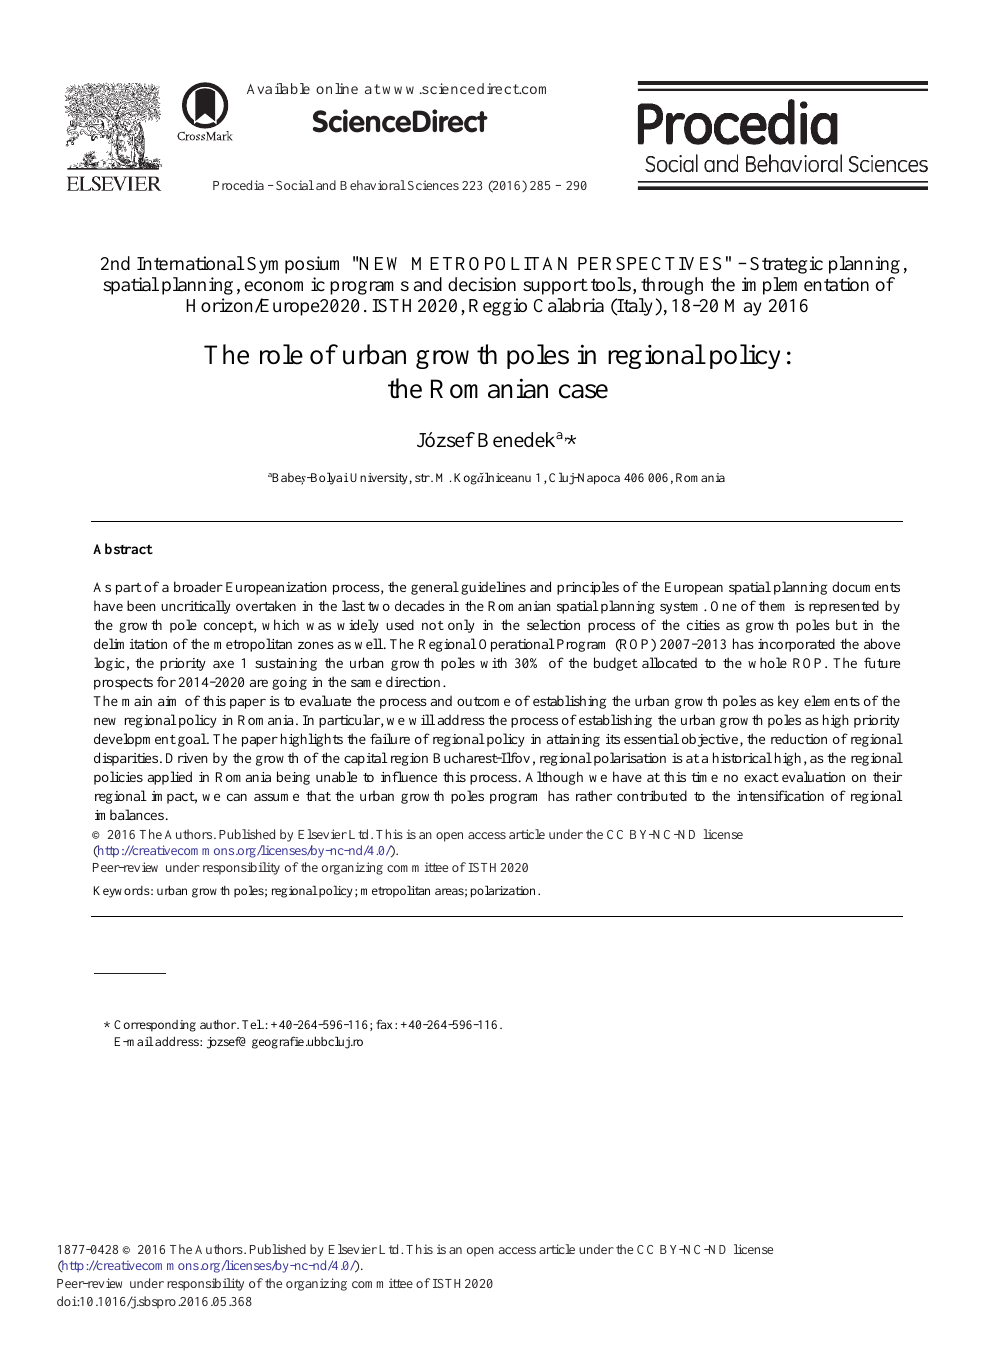 The Role of Urban Growth Poles in Regional Policy: The Romanian Case